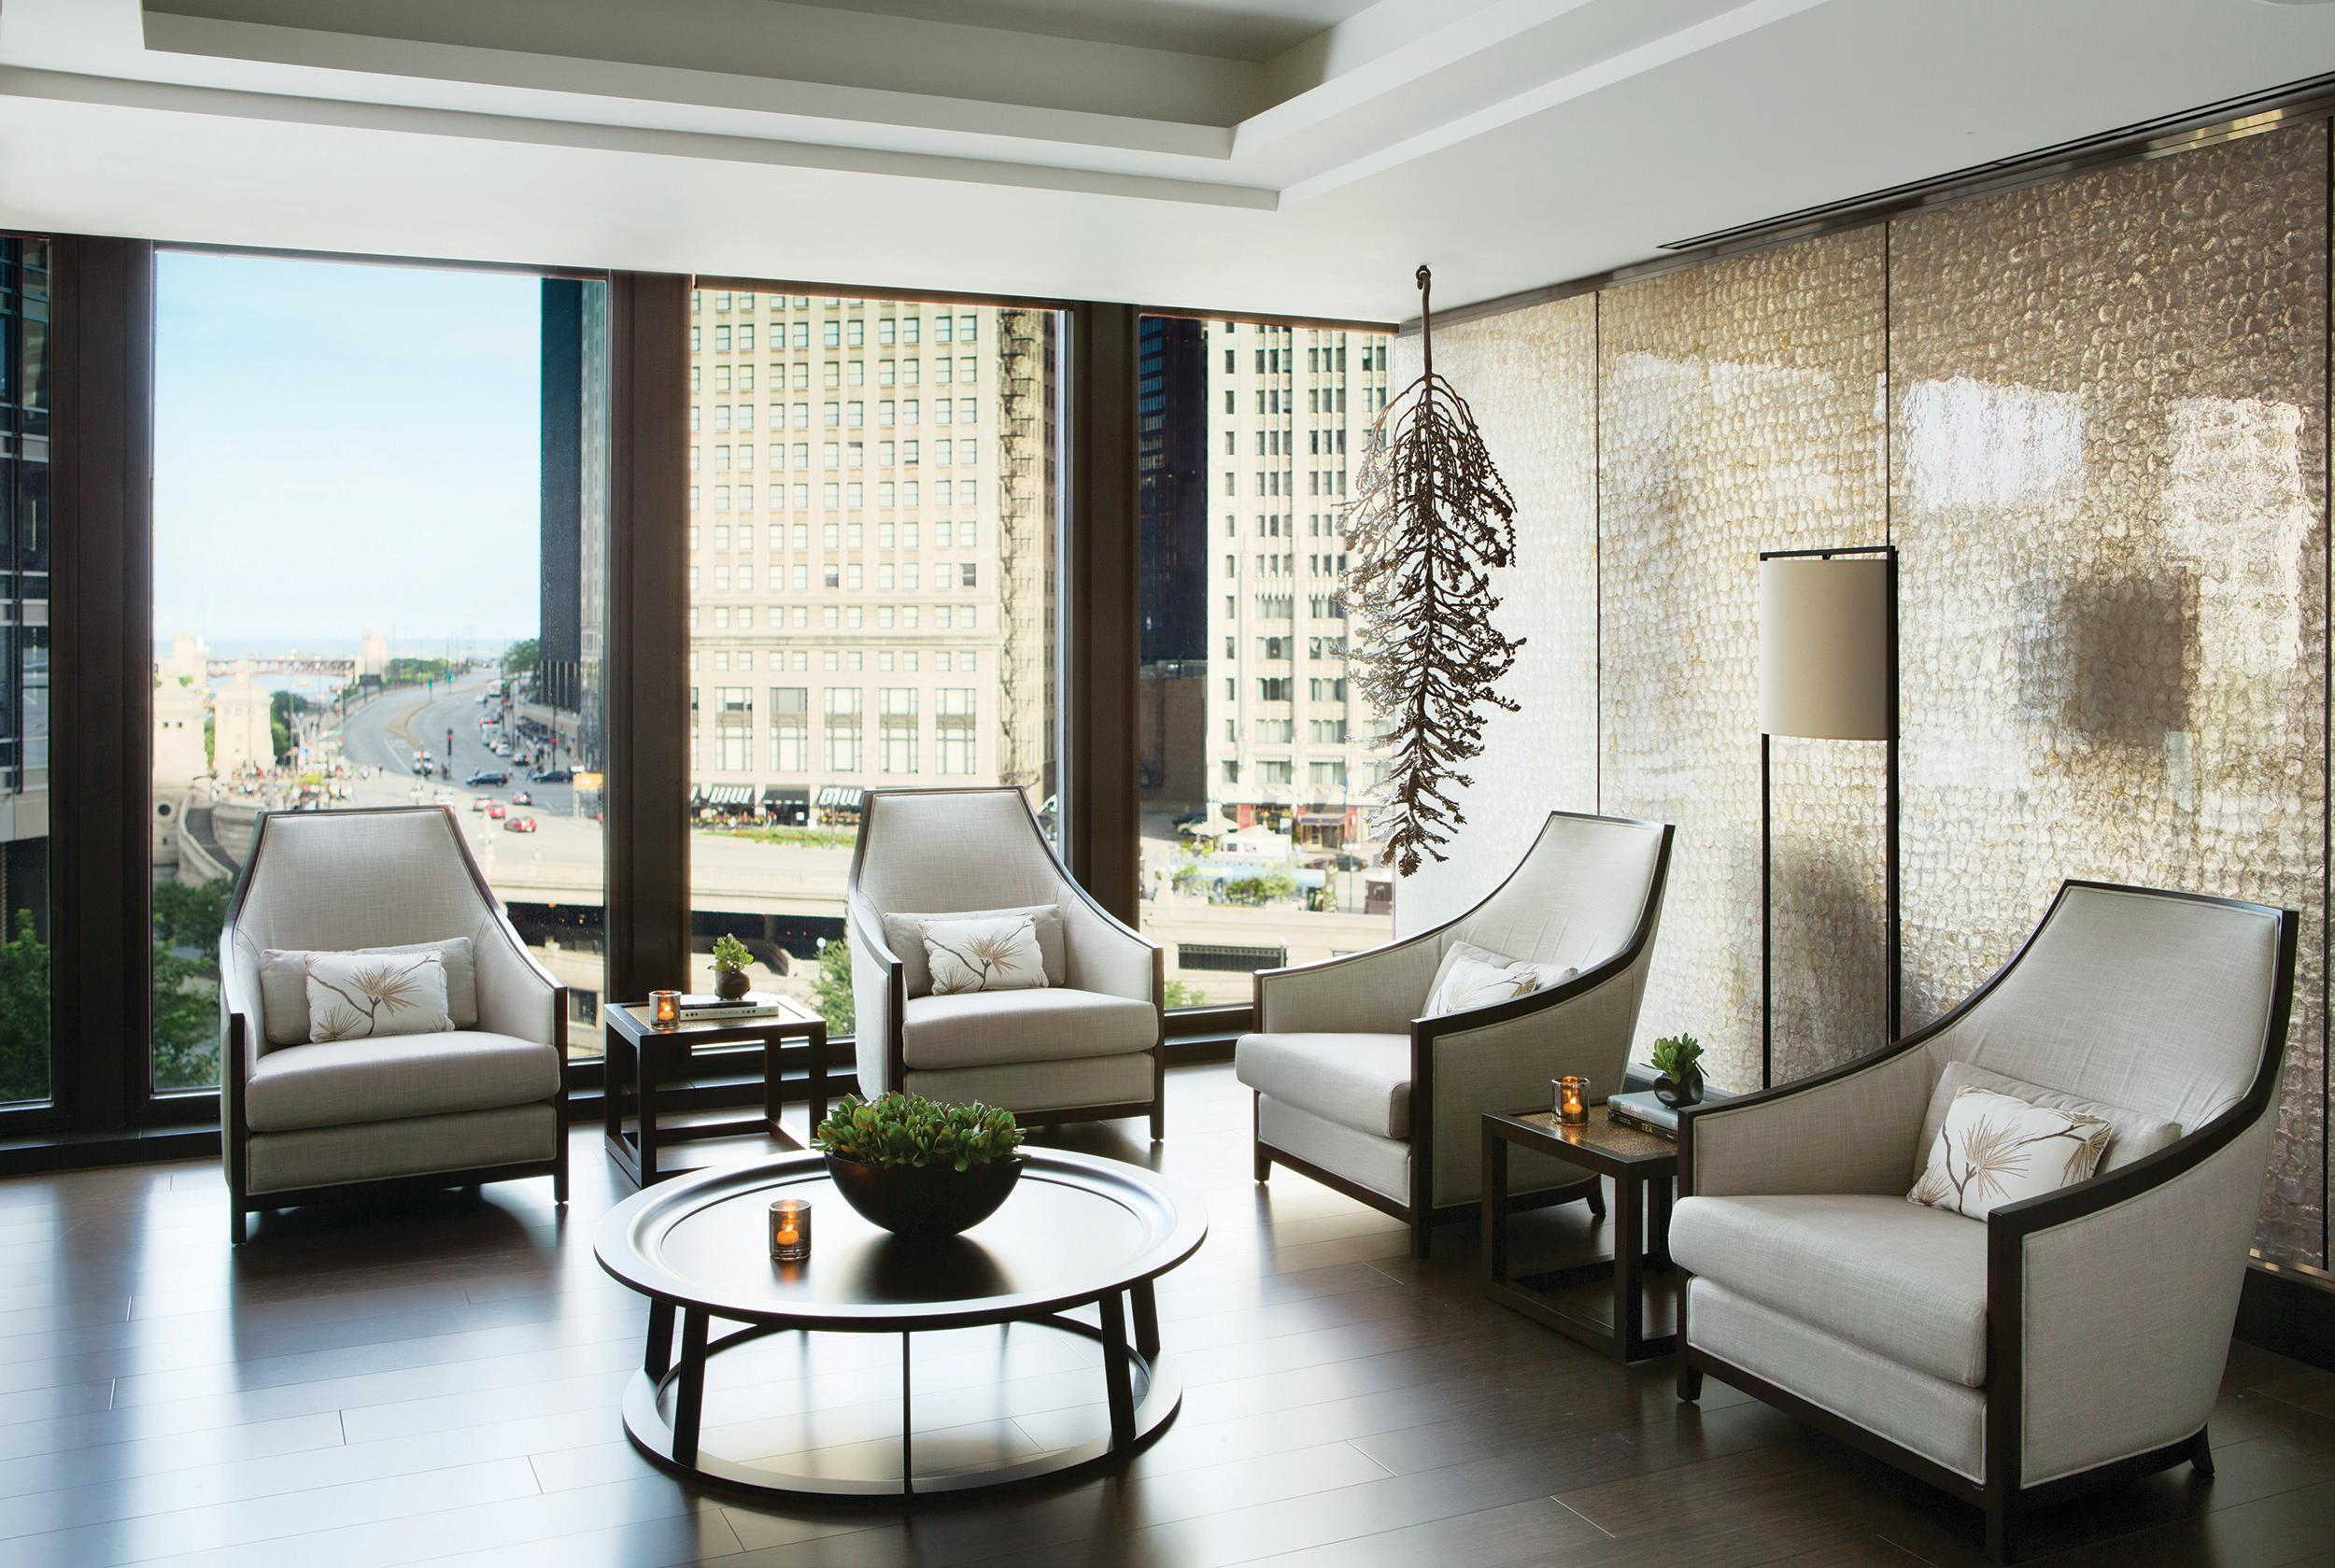 Chuan Spa at The Langham, Chicago